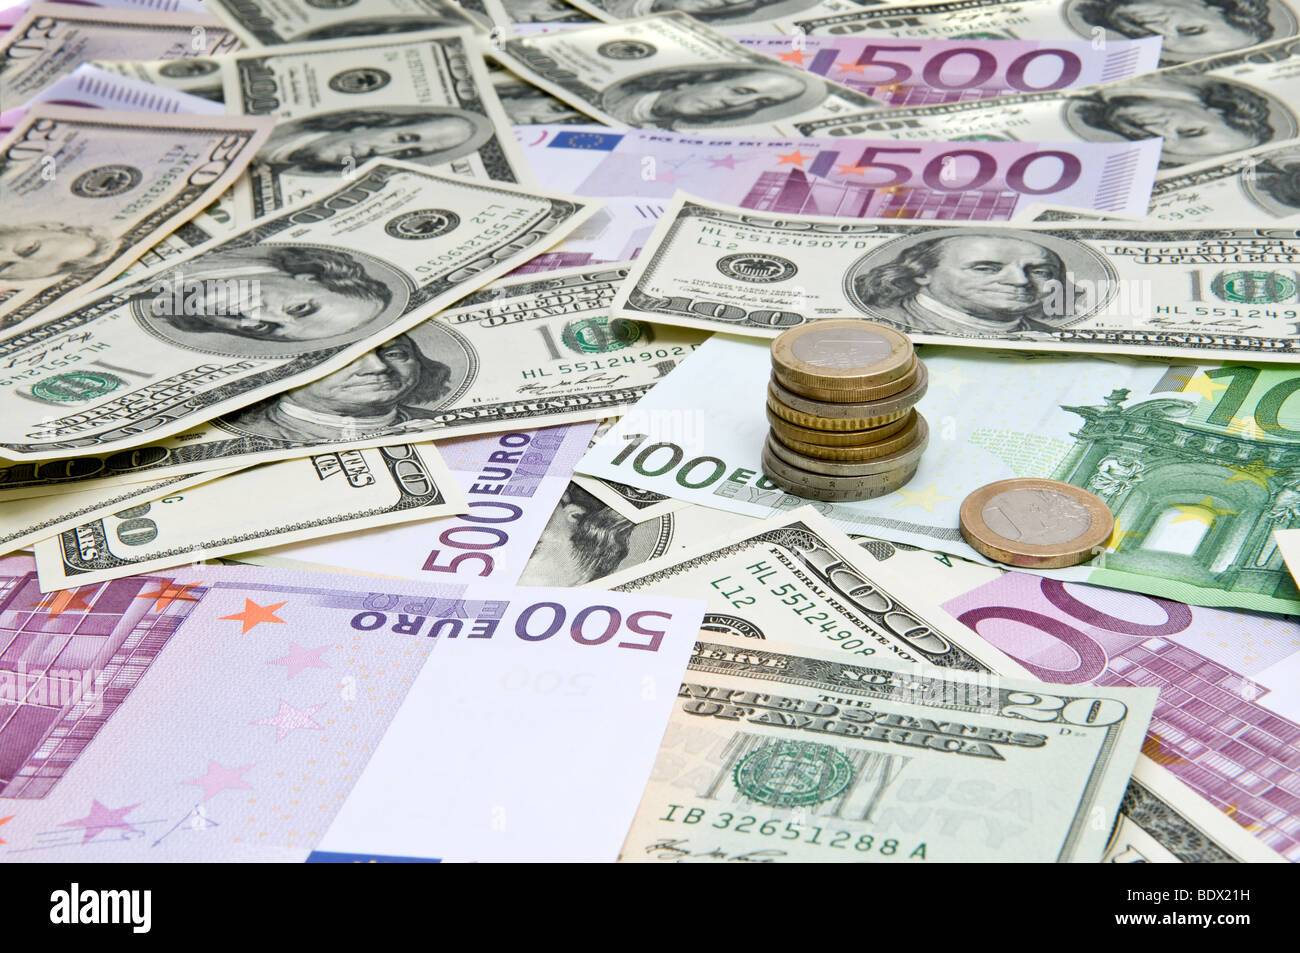 Global economy. International banknotes. Mixed currencies - Stock Image